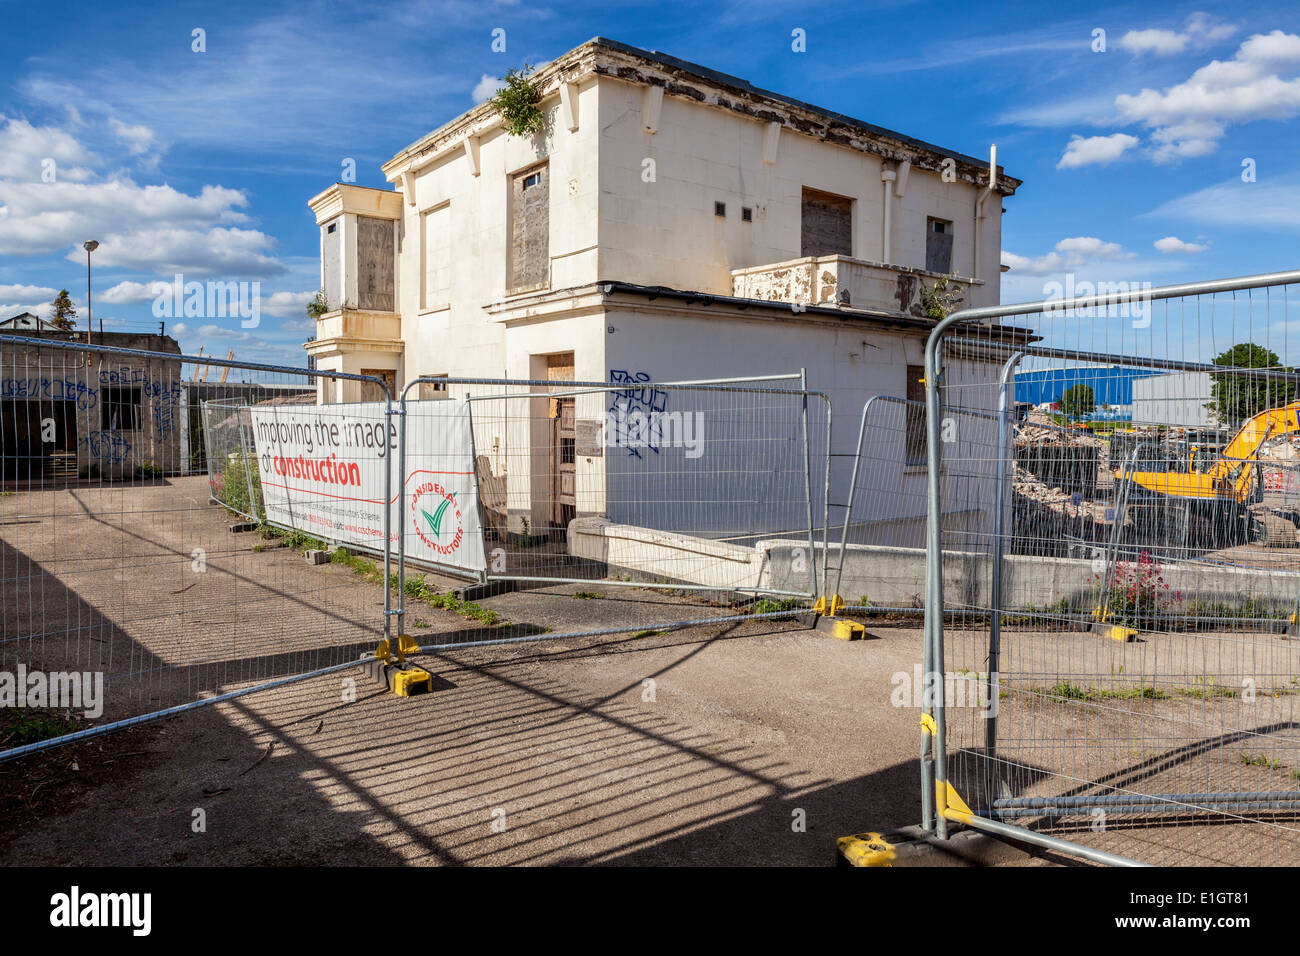 Grade ll listed Enderby House is fenced off, abandoned and derelict as area is redeveloped, Thames Path, Greenwich Peninsula, UK - Stock Image